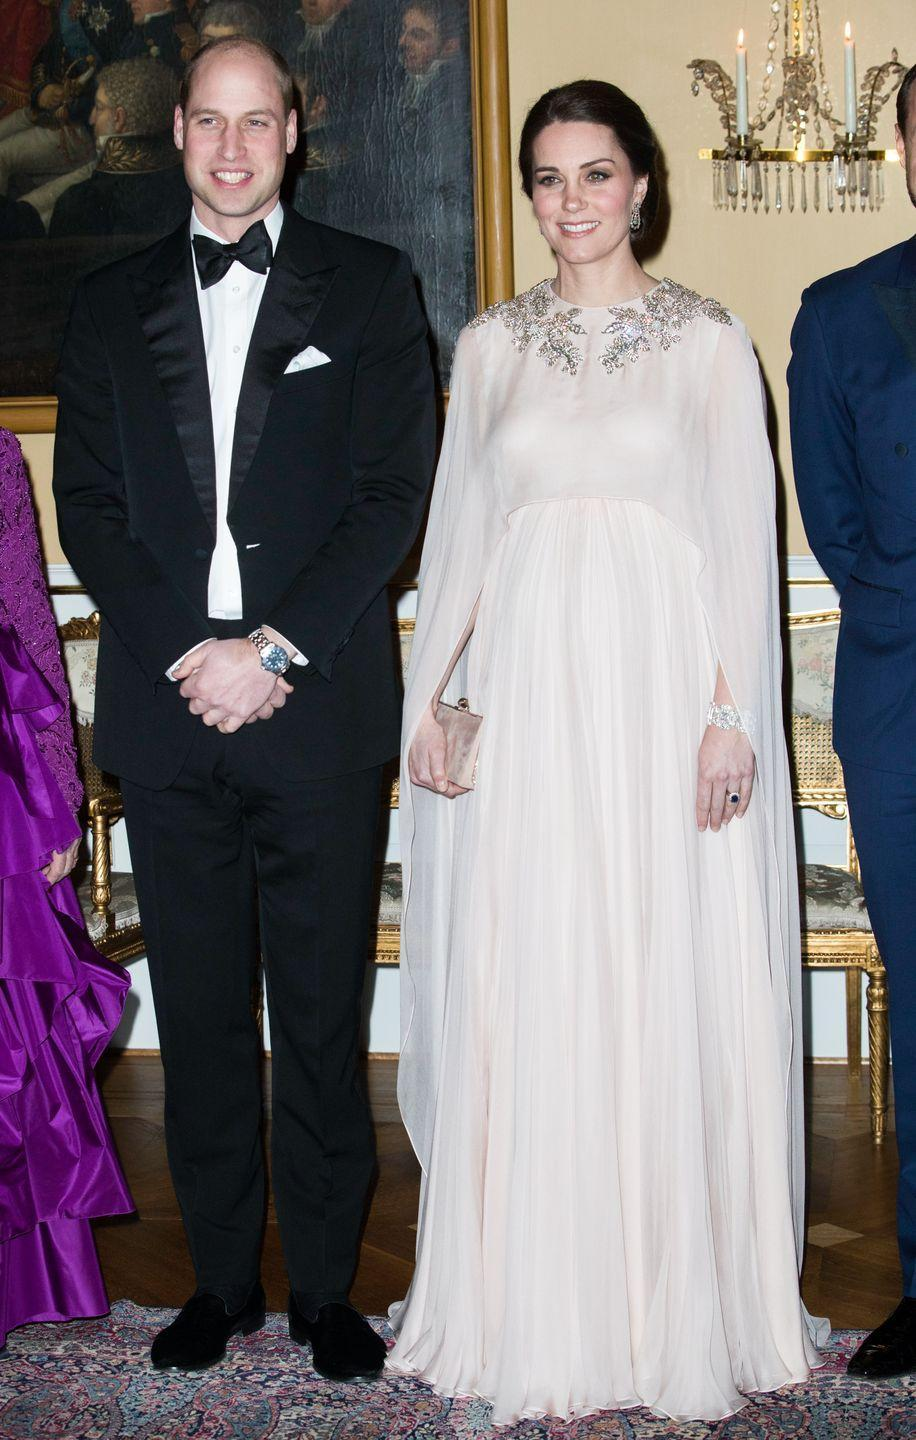 """<p>During a <a href=""""https://www.townandcountrymag.com/society/tradition/g15917756/photos-kate-middleton-royal-tour-sweden-norway-2018/"""" rel=""""nofollow noopener"""" target=""""_blank"""" data-ylk=""""slk:2018 visit to Oslo, Norway"""" class=""""link rapid-noclick-resp"""">2018 visit to Oslo, Norway</a>, Kate glowed in this cream cape dress. She wore the Grecian-inspired Alexander McQueen gown to a dinner at Norway's Royal Palace. The Duchess chose an updo to further show off the dress's intricate neckline detailing. <br></p>"""